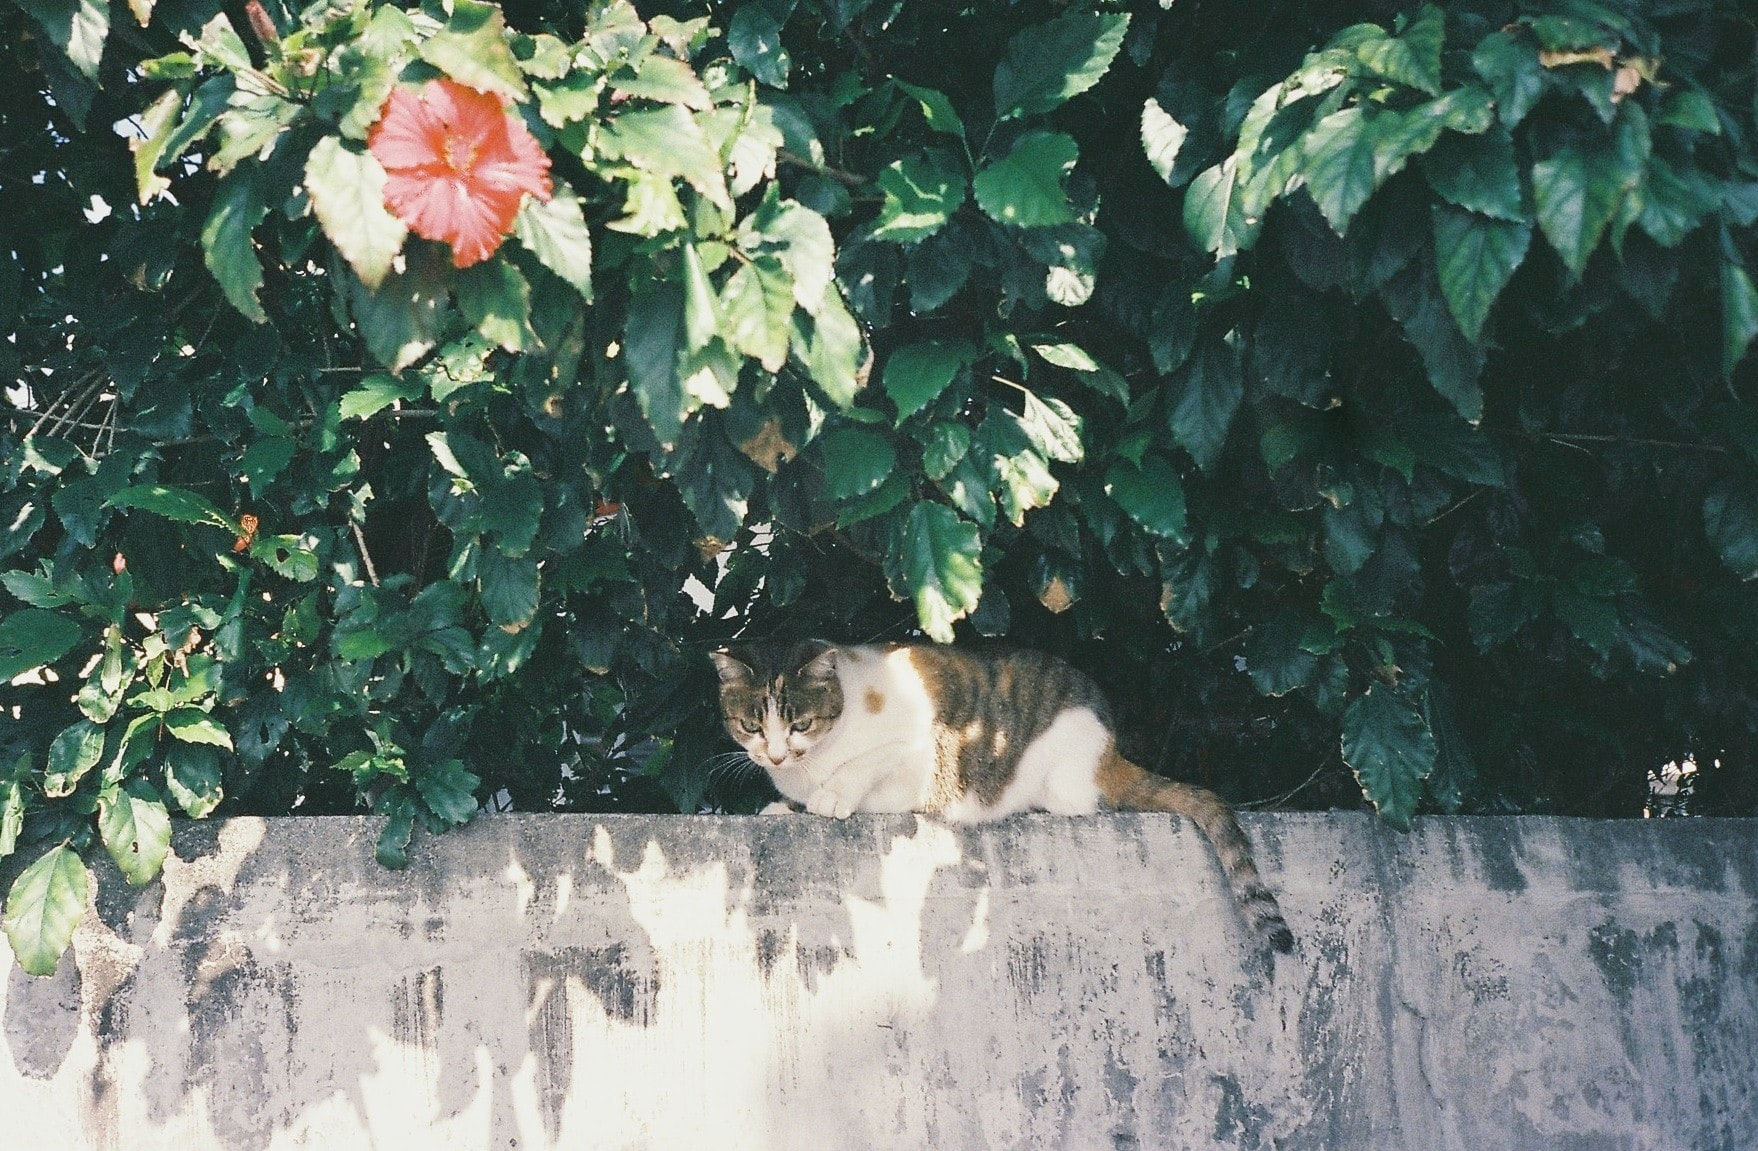 A cat sitting on a concrete wall under a flowering tree